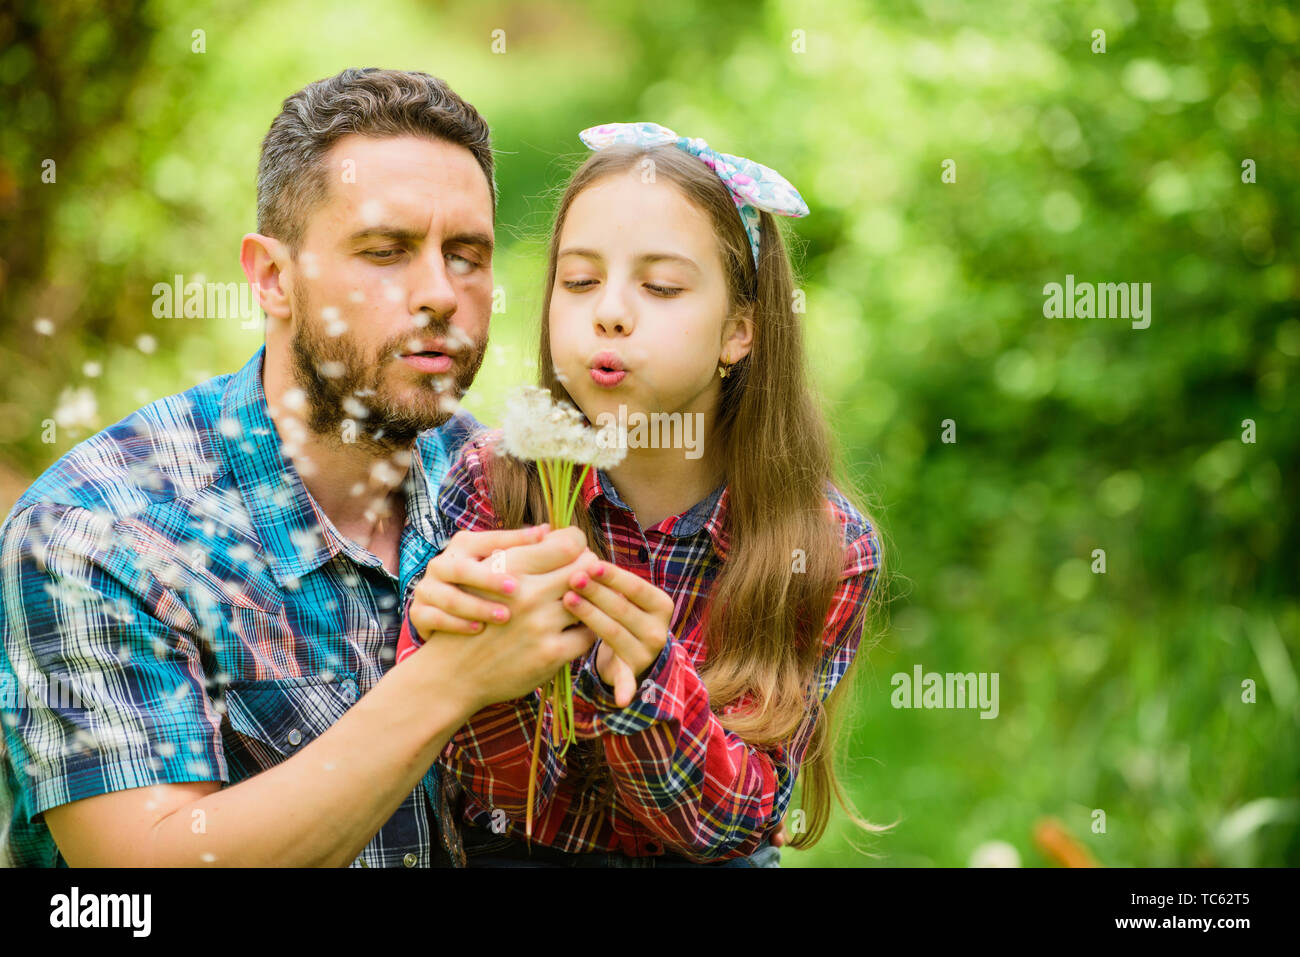 daughter and father love dandelion flower. family summer farm. spring village country. little girl and happy man dad. earth day. ecology. Happy family day. Tender moment. - Stock Image